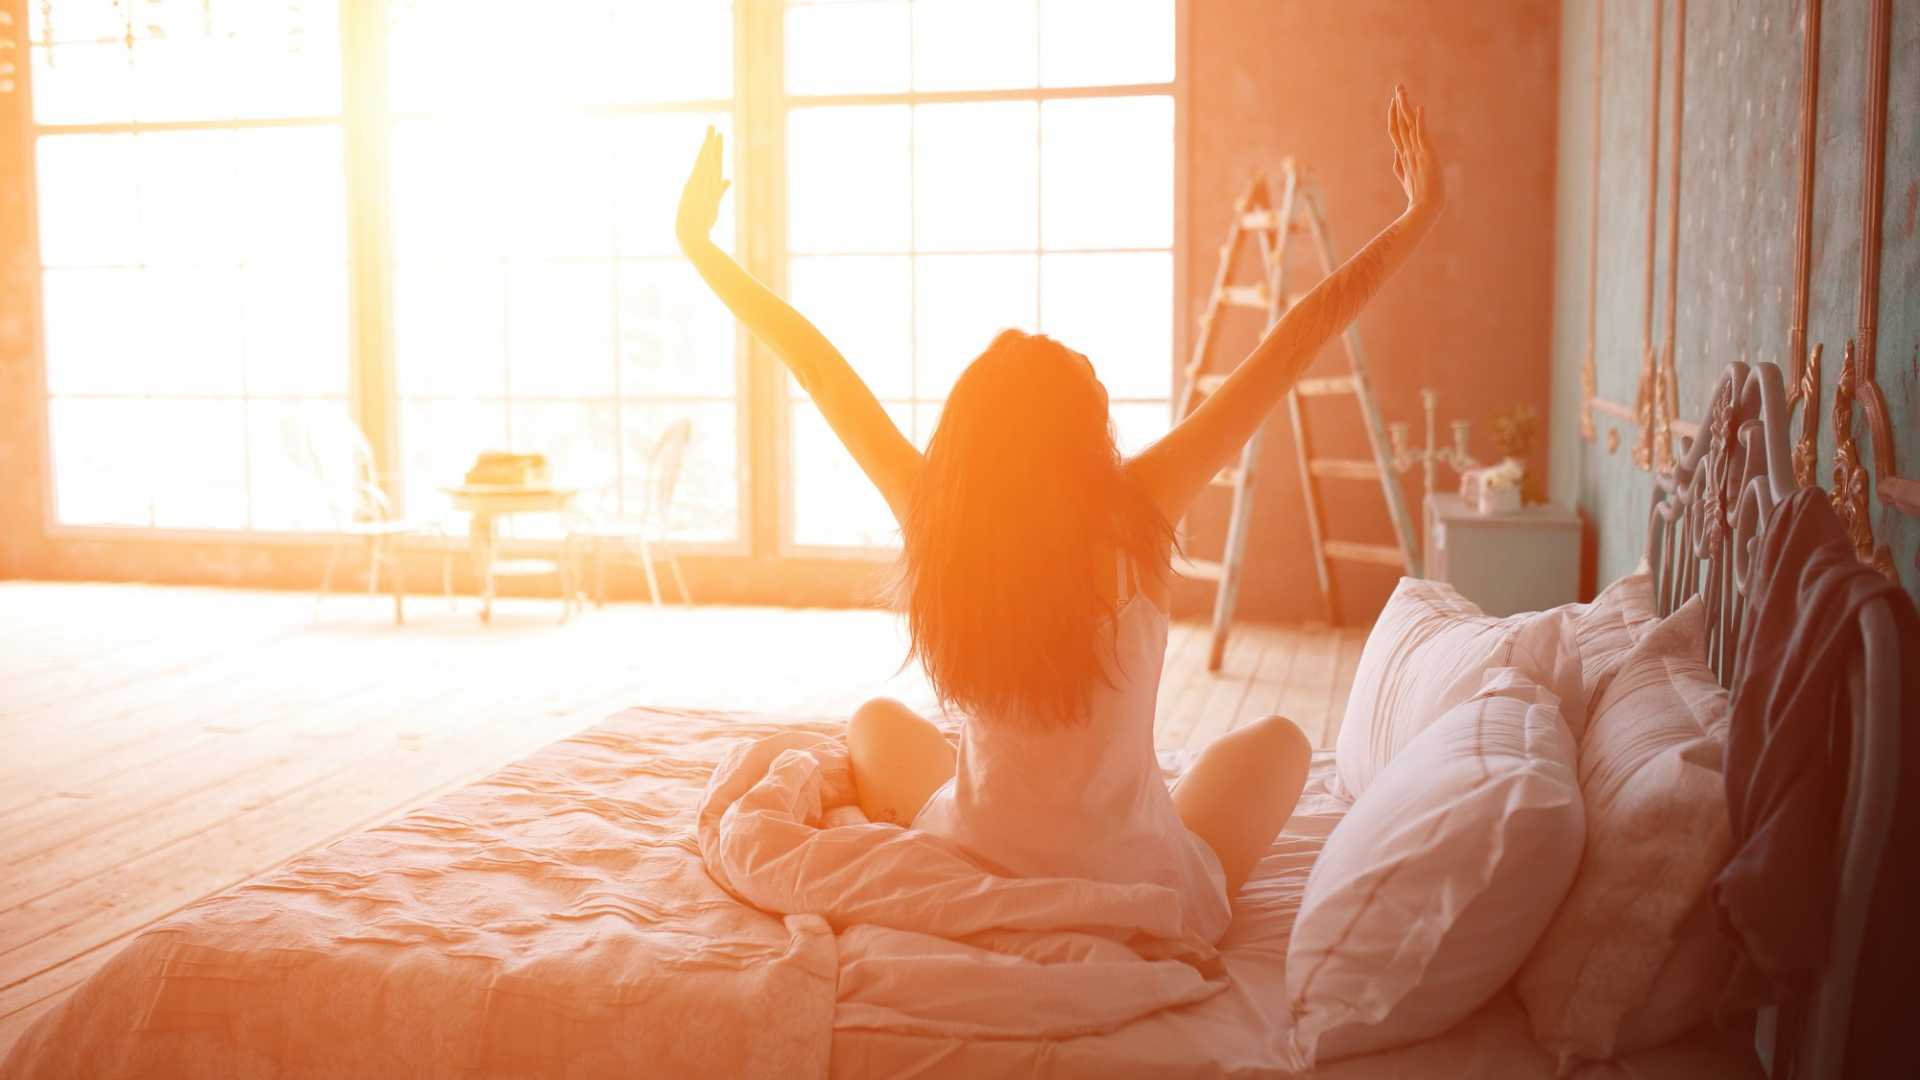 Can't Get a Good Night's Sleep? Do This 1 Thing to Sleep Like a Baby